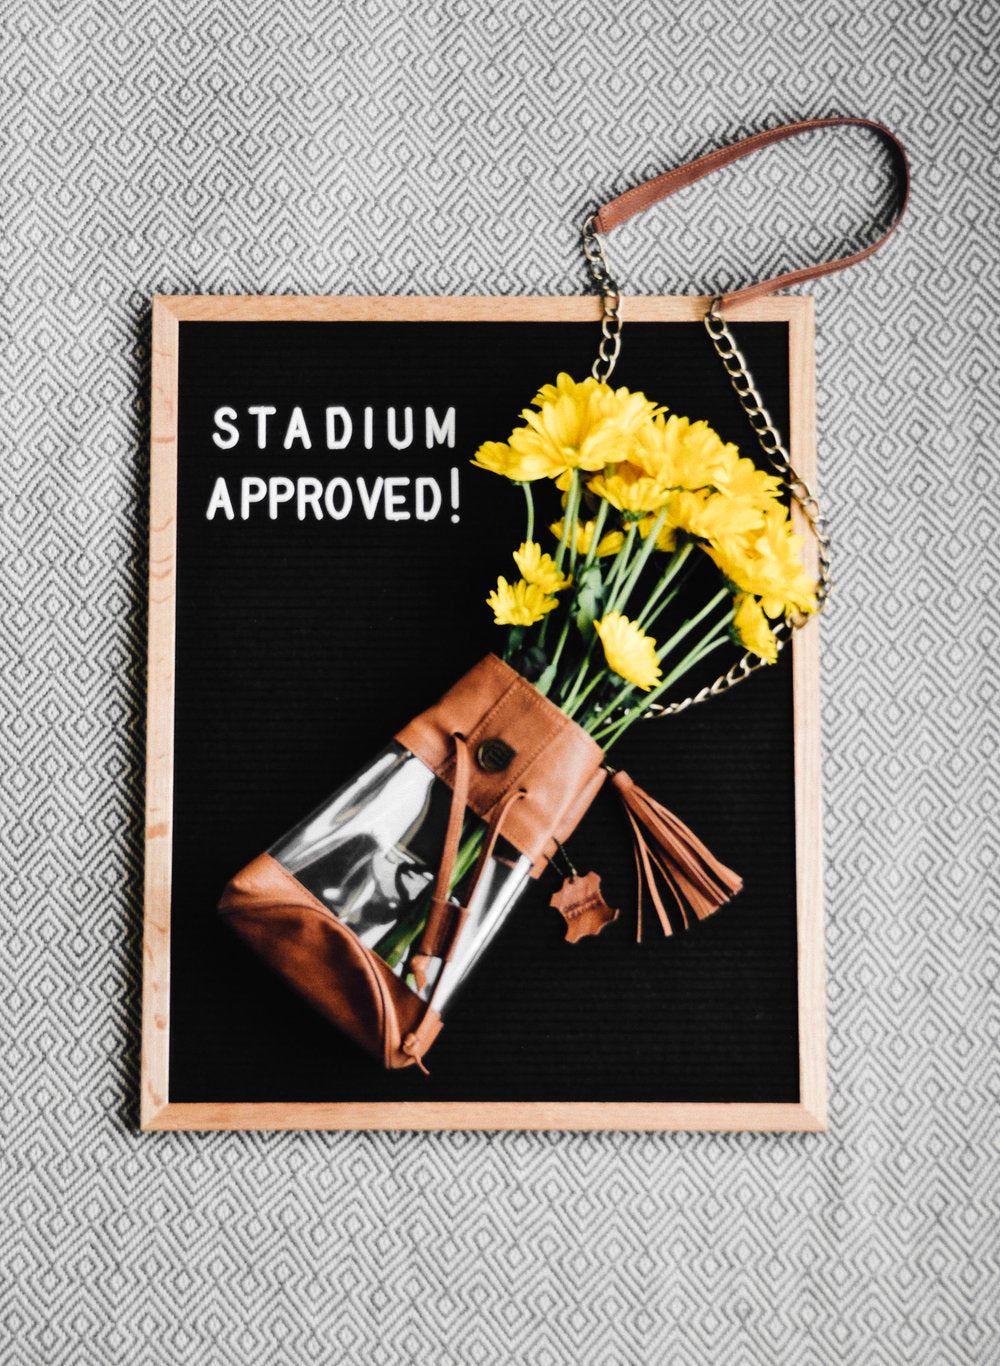 Stadium Approved: Clear Bag Policy